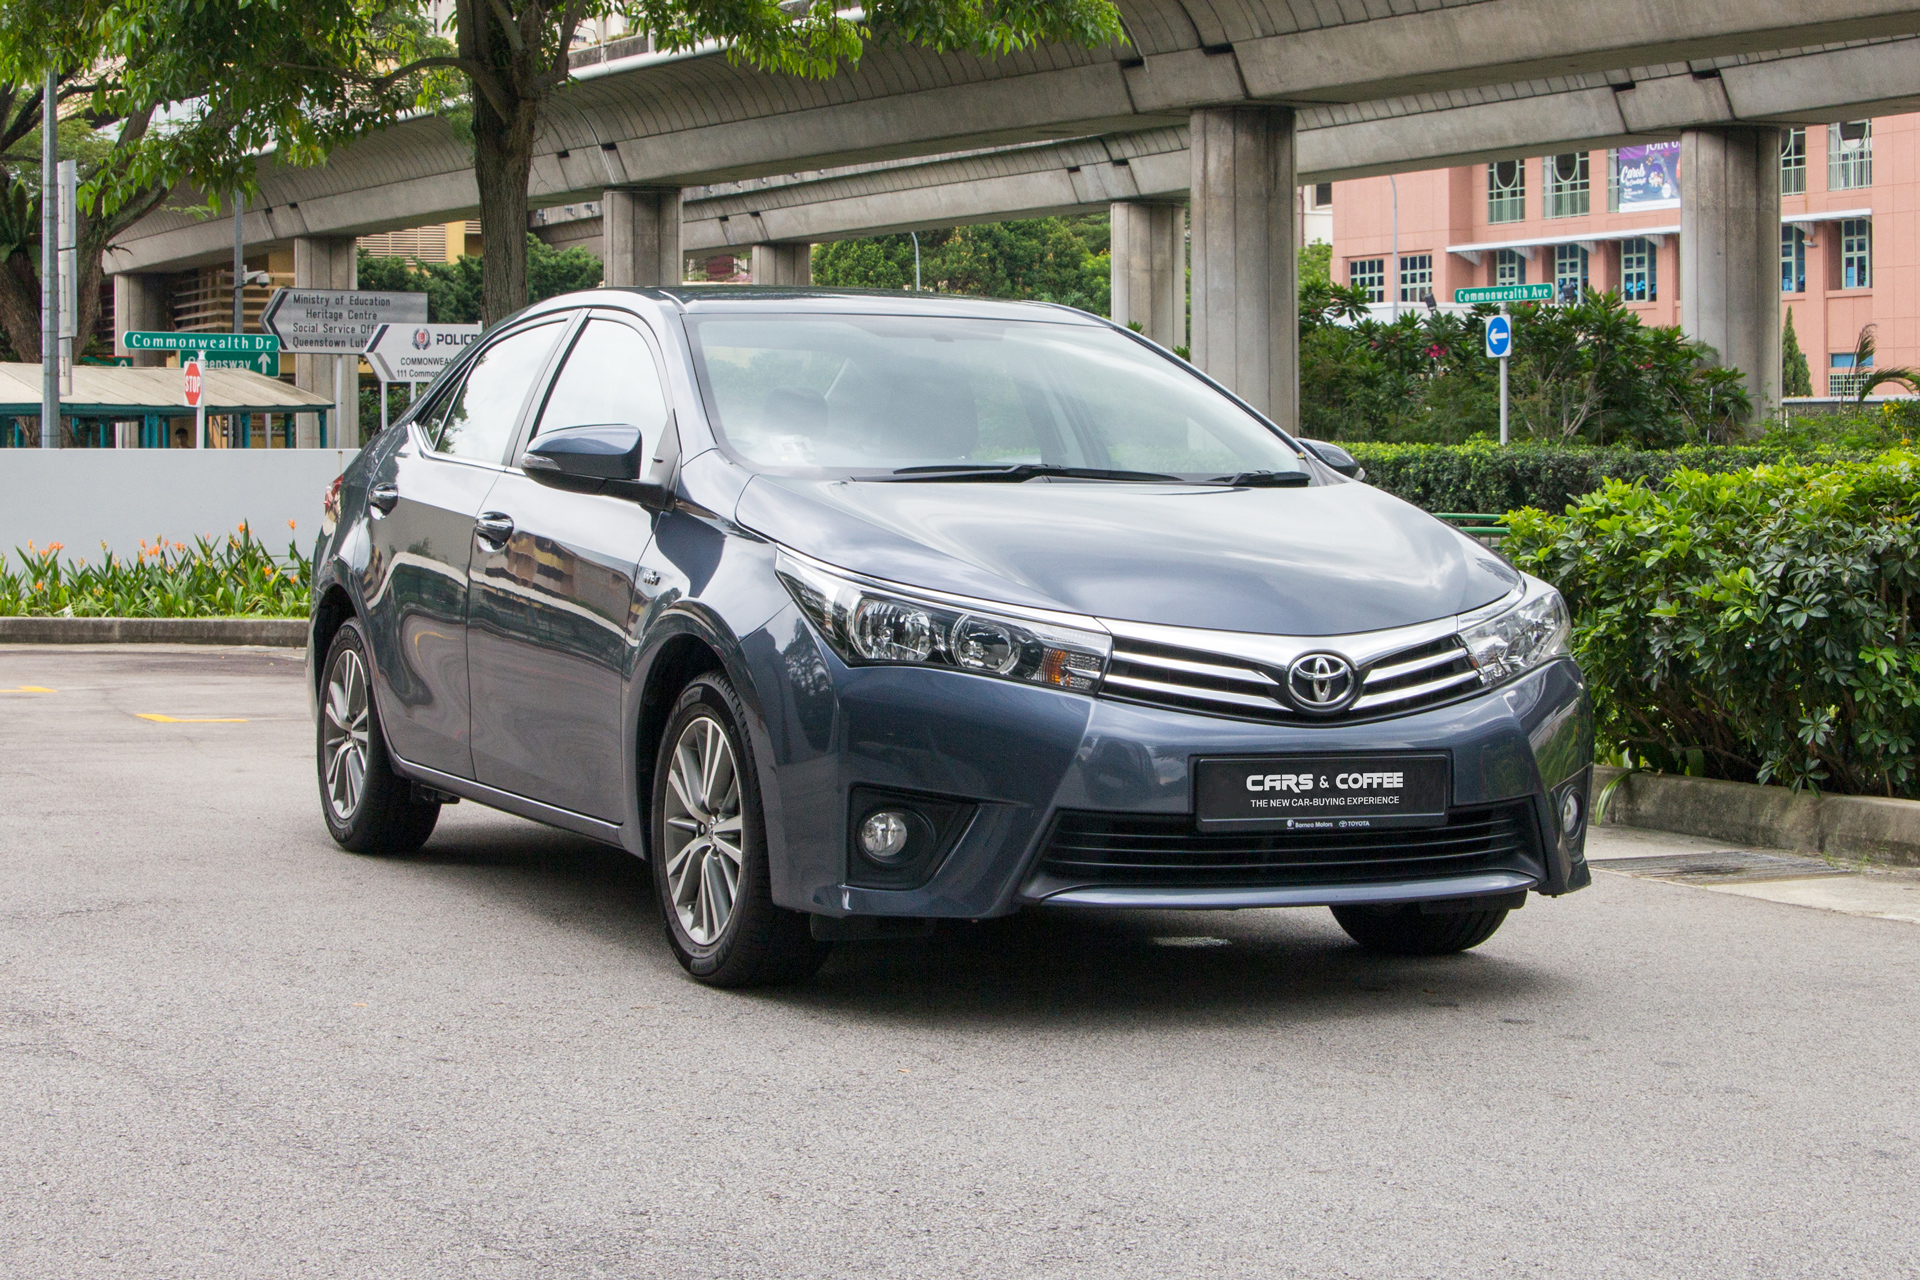 Certified Pre-Owned Toyota Corolla Altis 1.6A Classic   Cars and Coffee Singapore